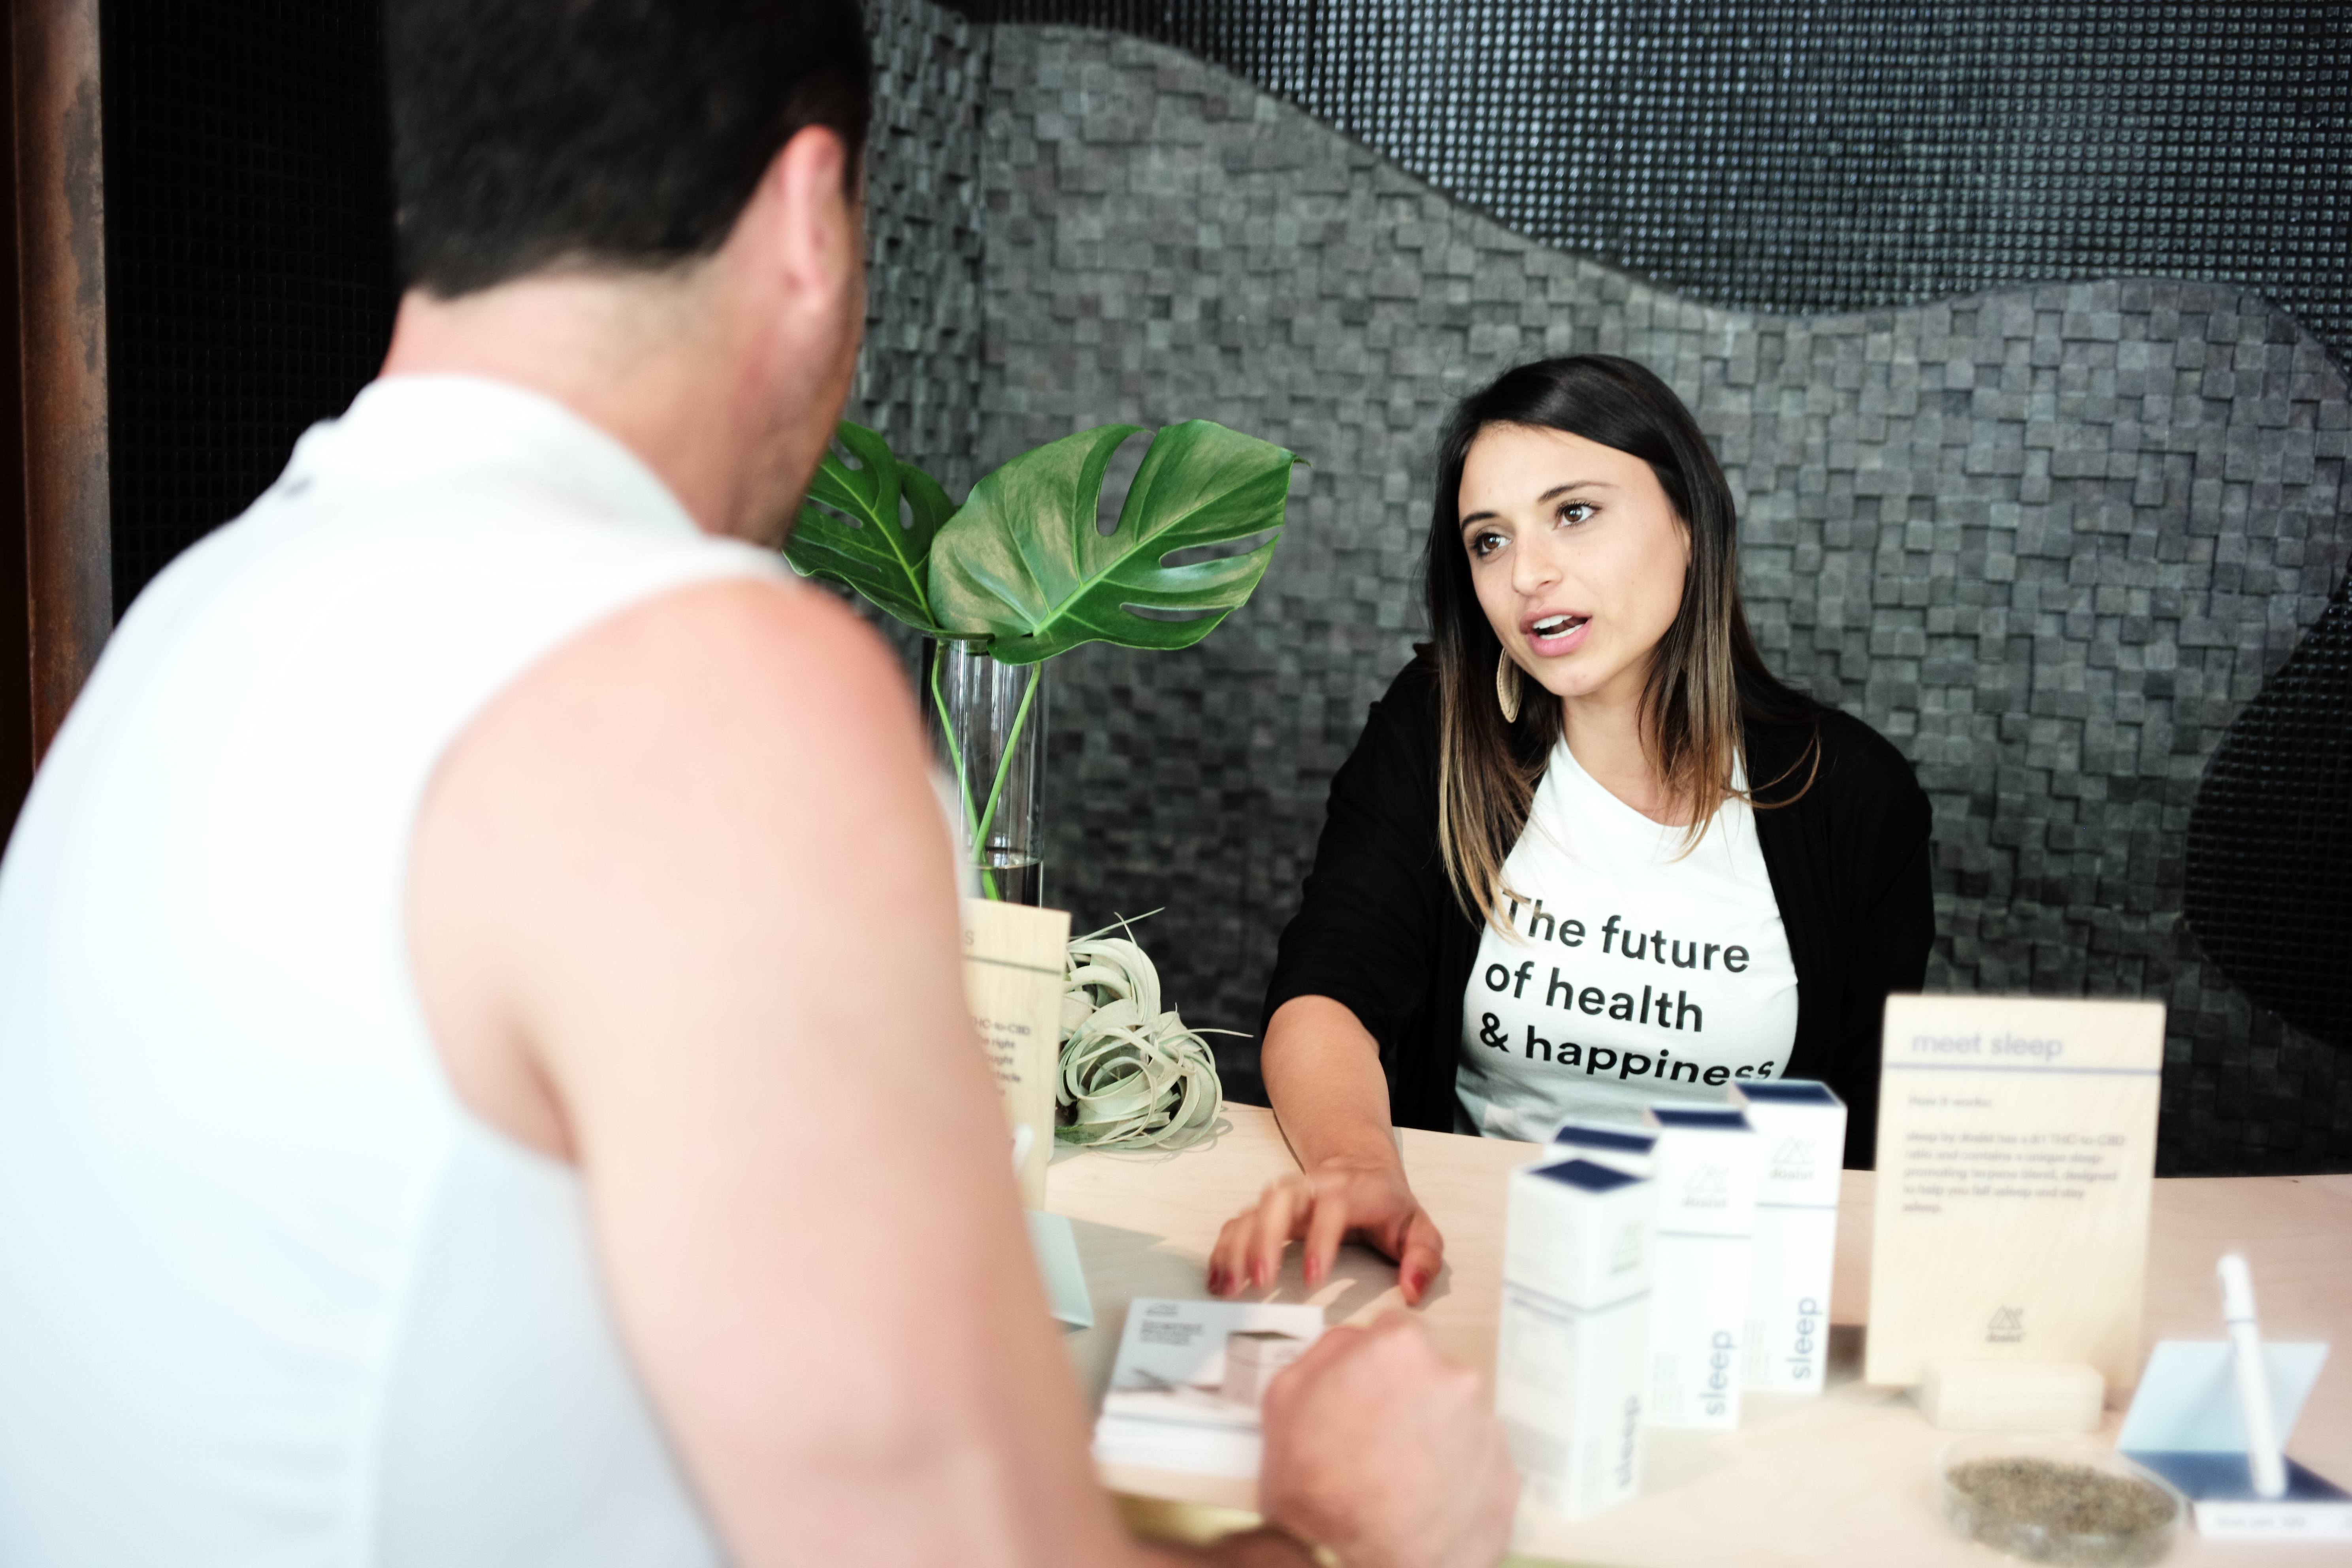 Concierge at dosist explaining benefits of products to male customer